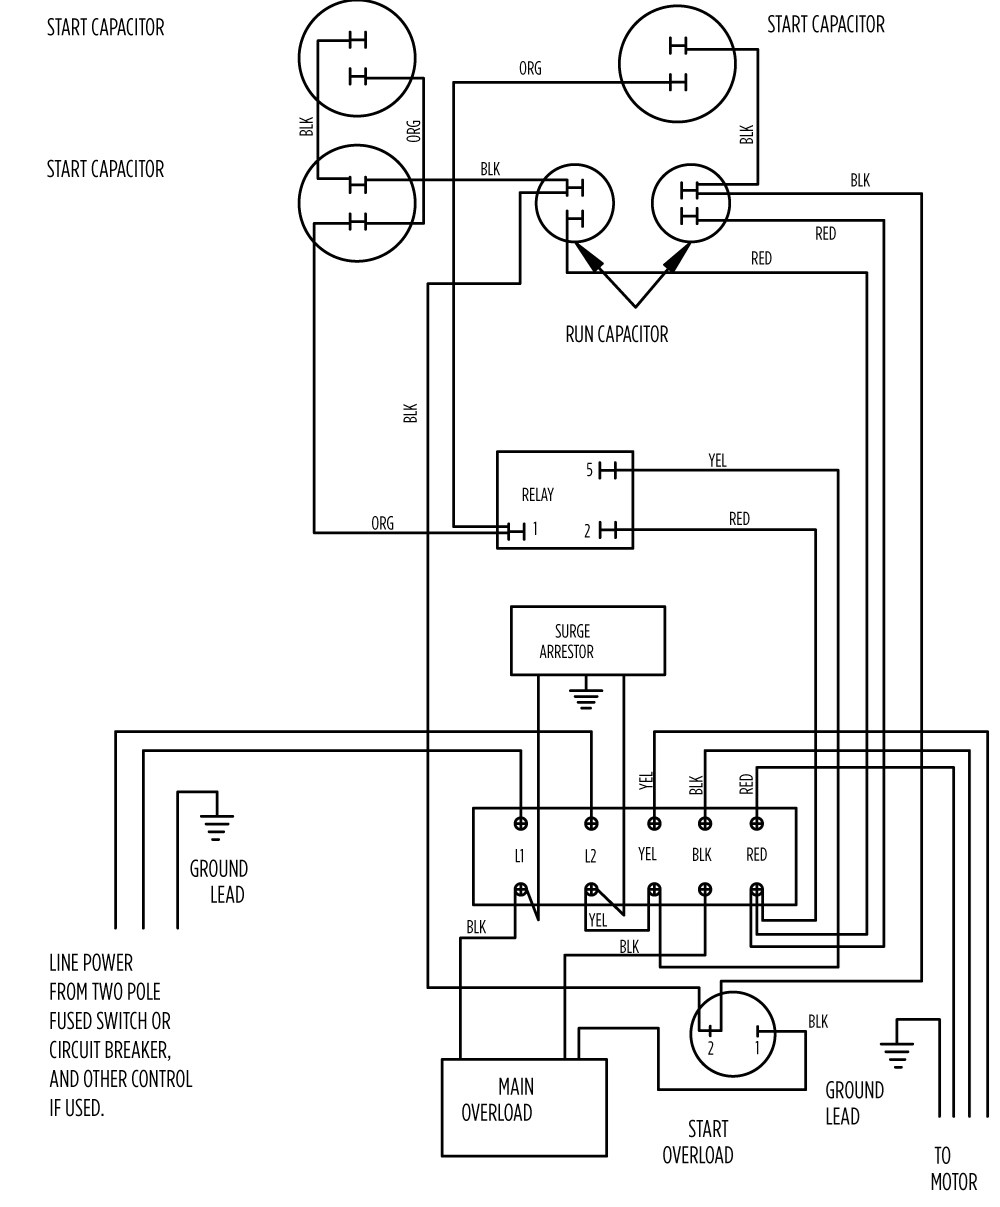 10 hp standard 282 202 9210 or 282 202 9230_aim gallery?format=jpg&quality=80 aim manual page 57 single phase motors and controls motor well wiring diagram at bakdesigns.co